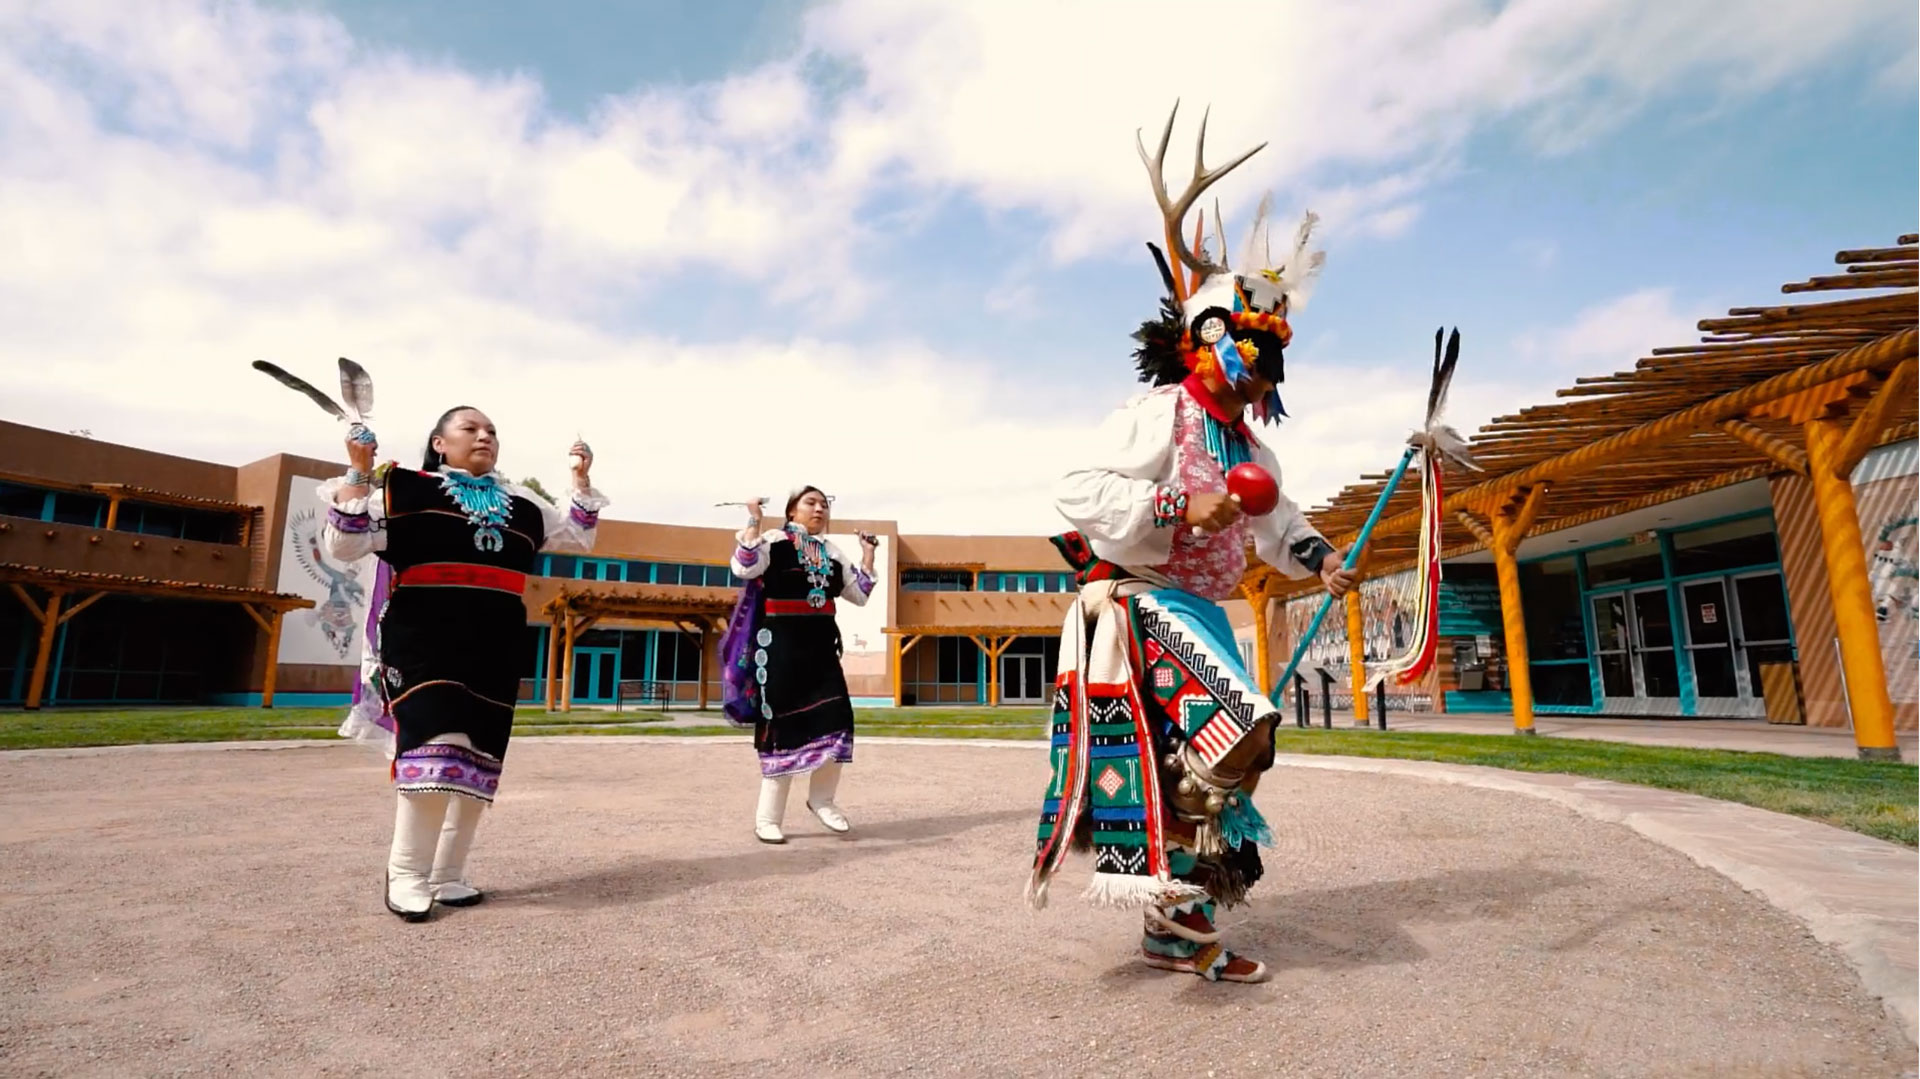 Indigenous Peoples Day 2020 at the Indian Pueblo Cultural Center